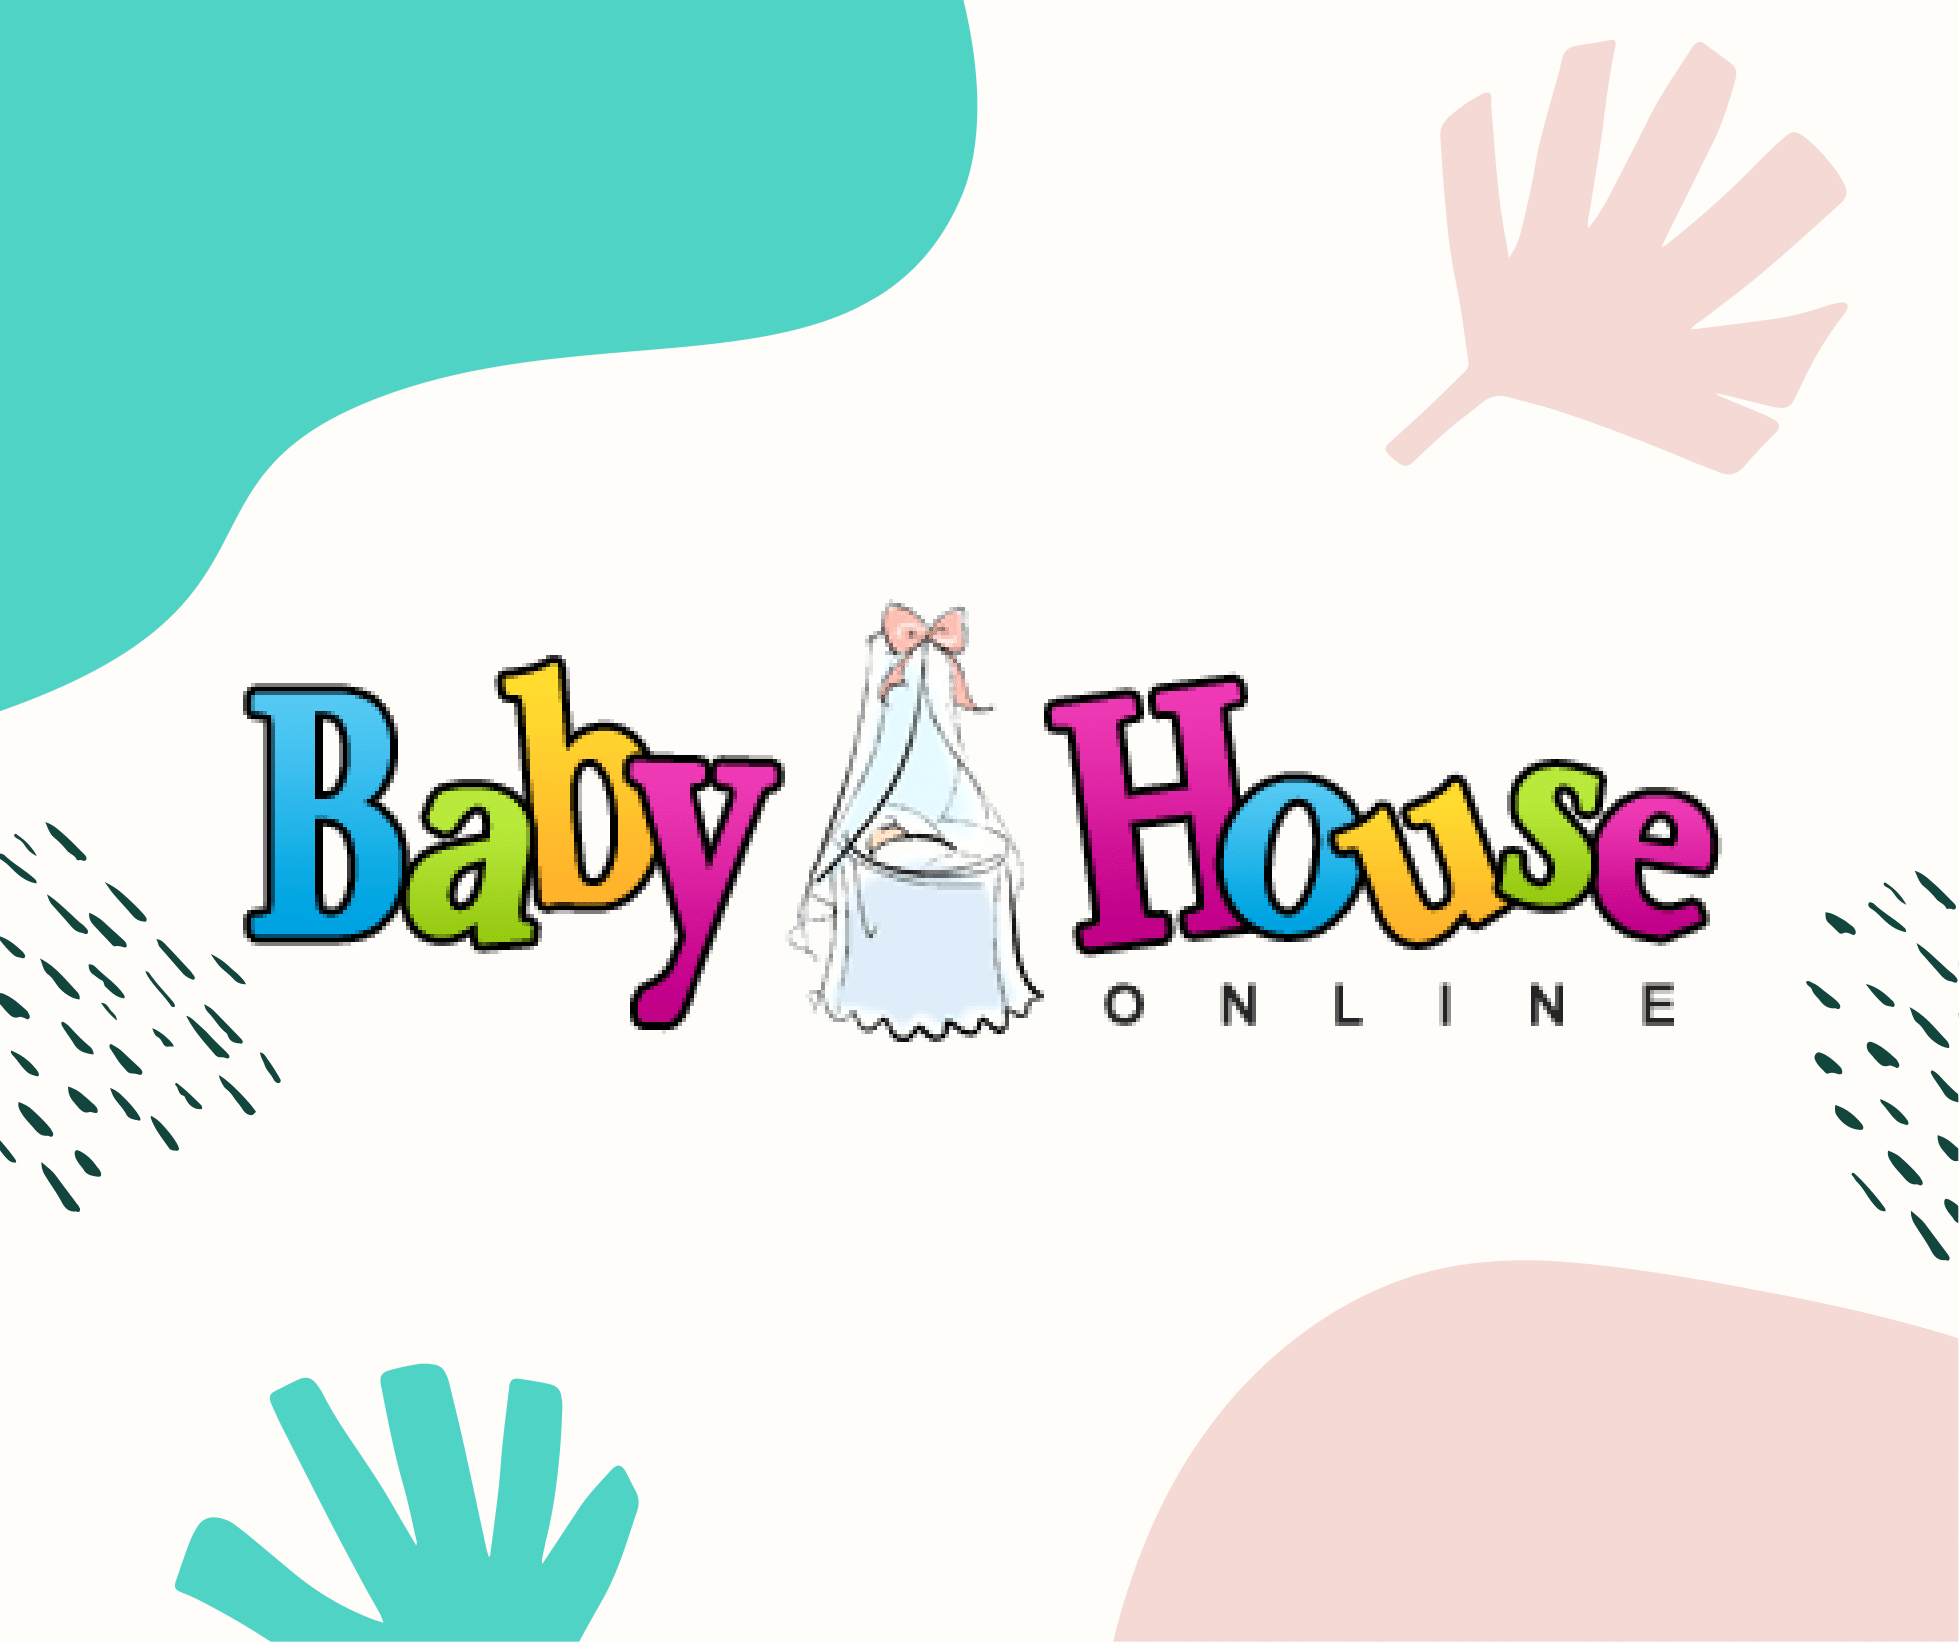 Baby House Online at Docks Bruxsel